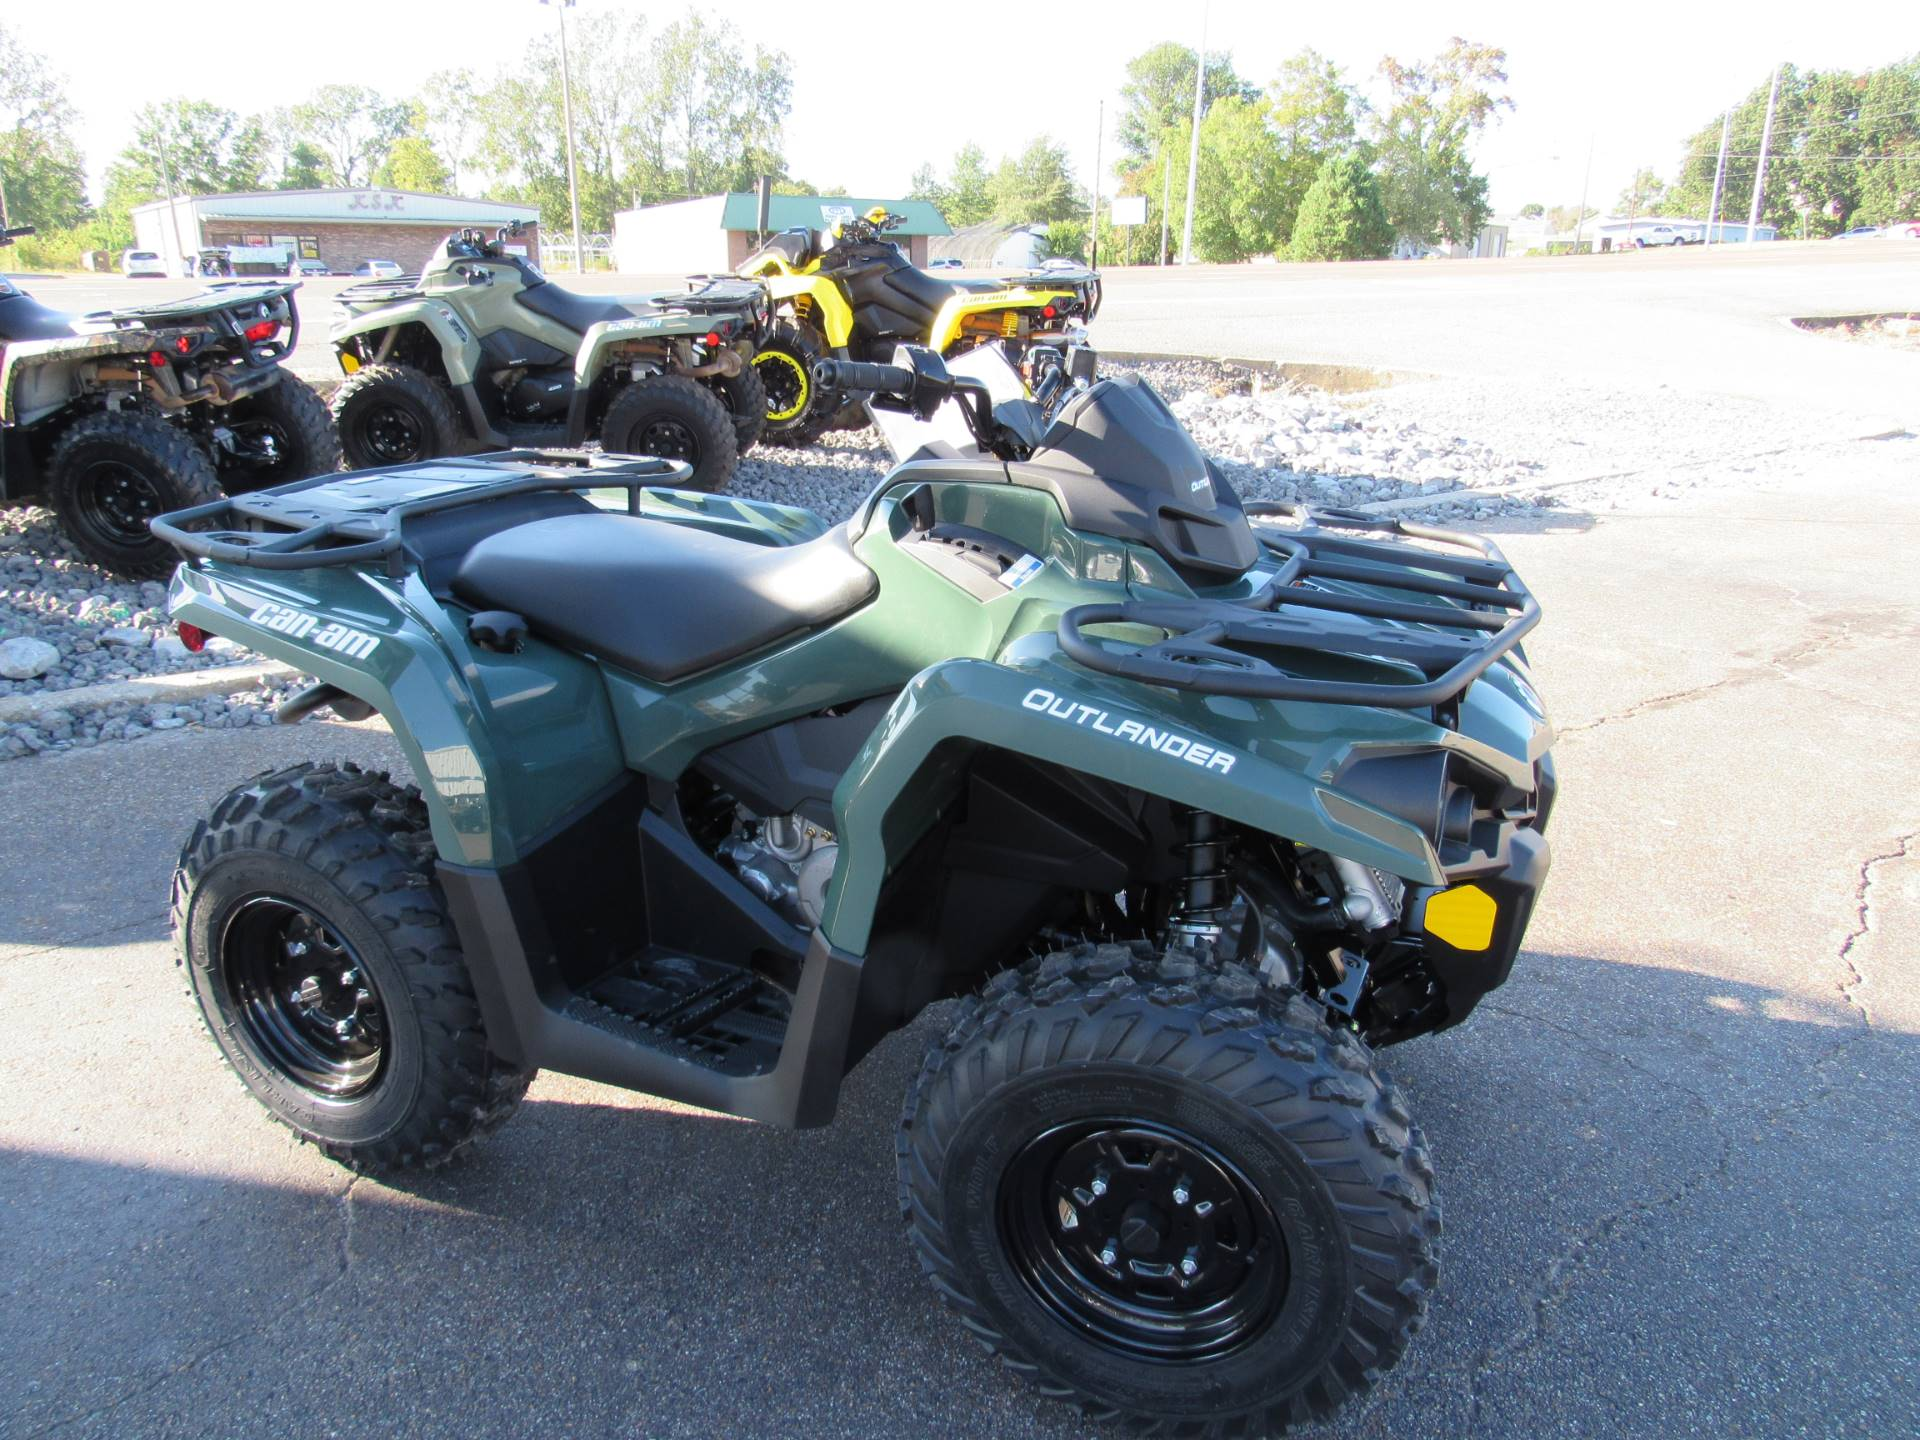 2021 Can-Am Outlander 450 in Dyersburg, Tennessee - Photo 4